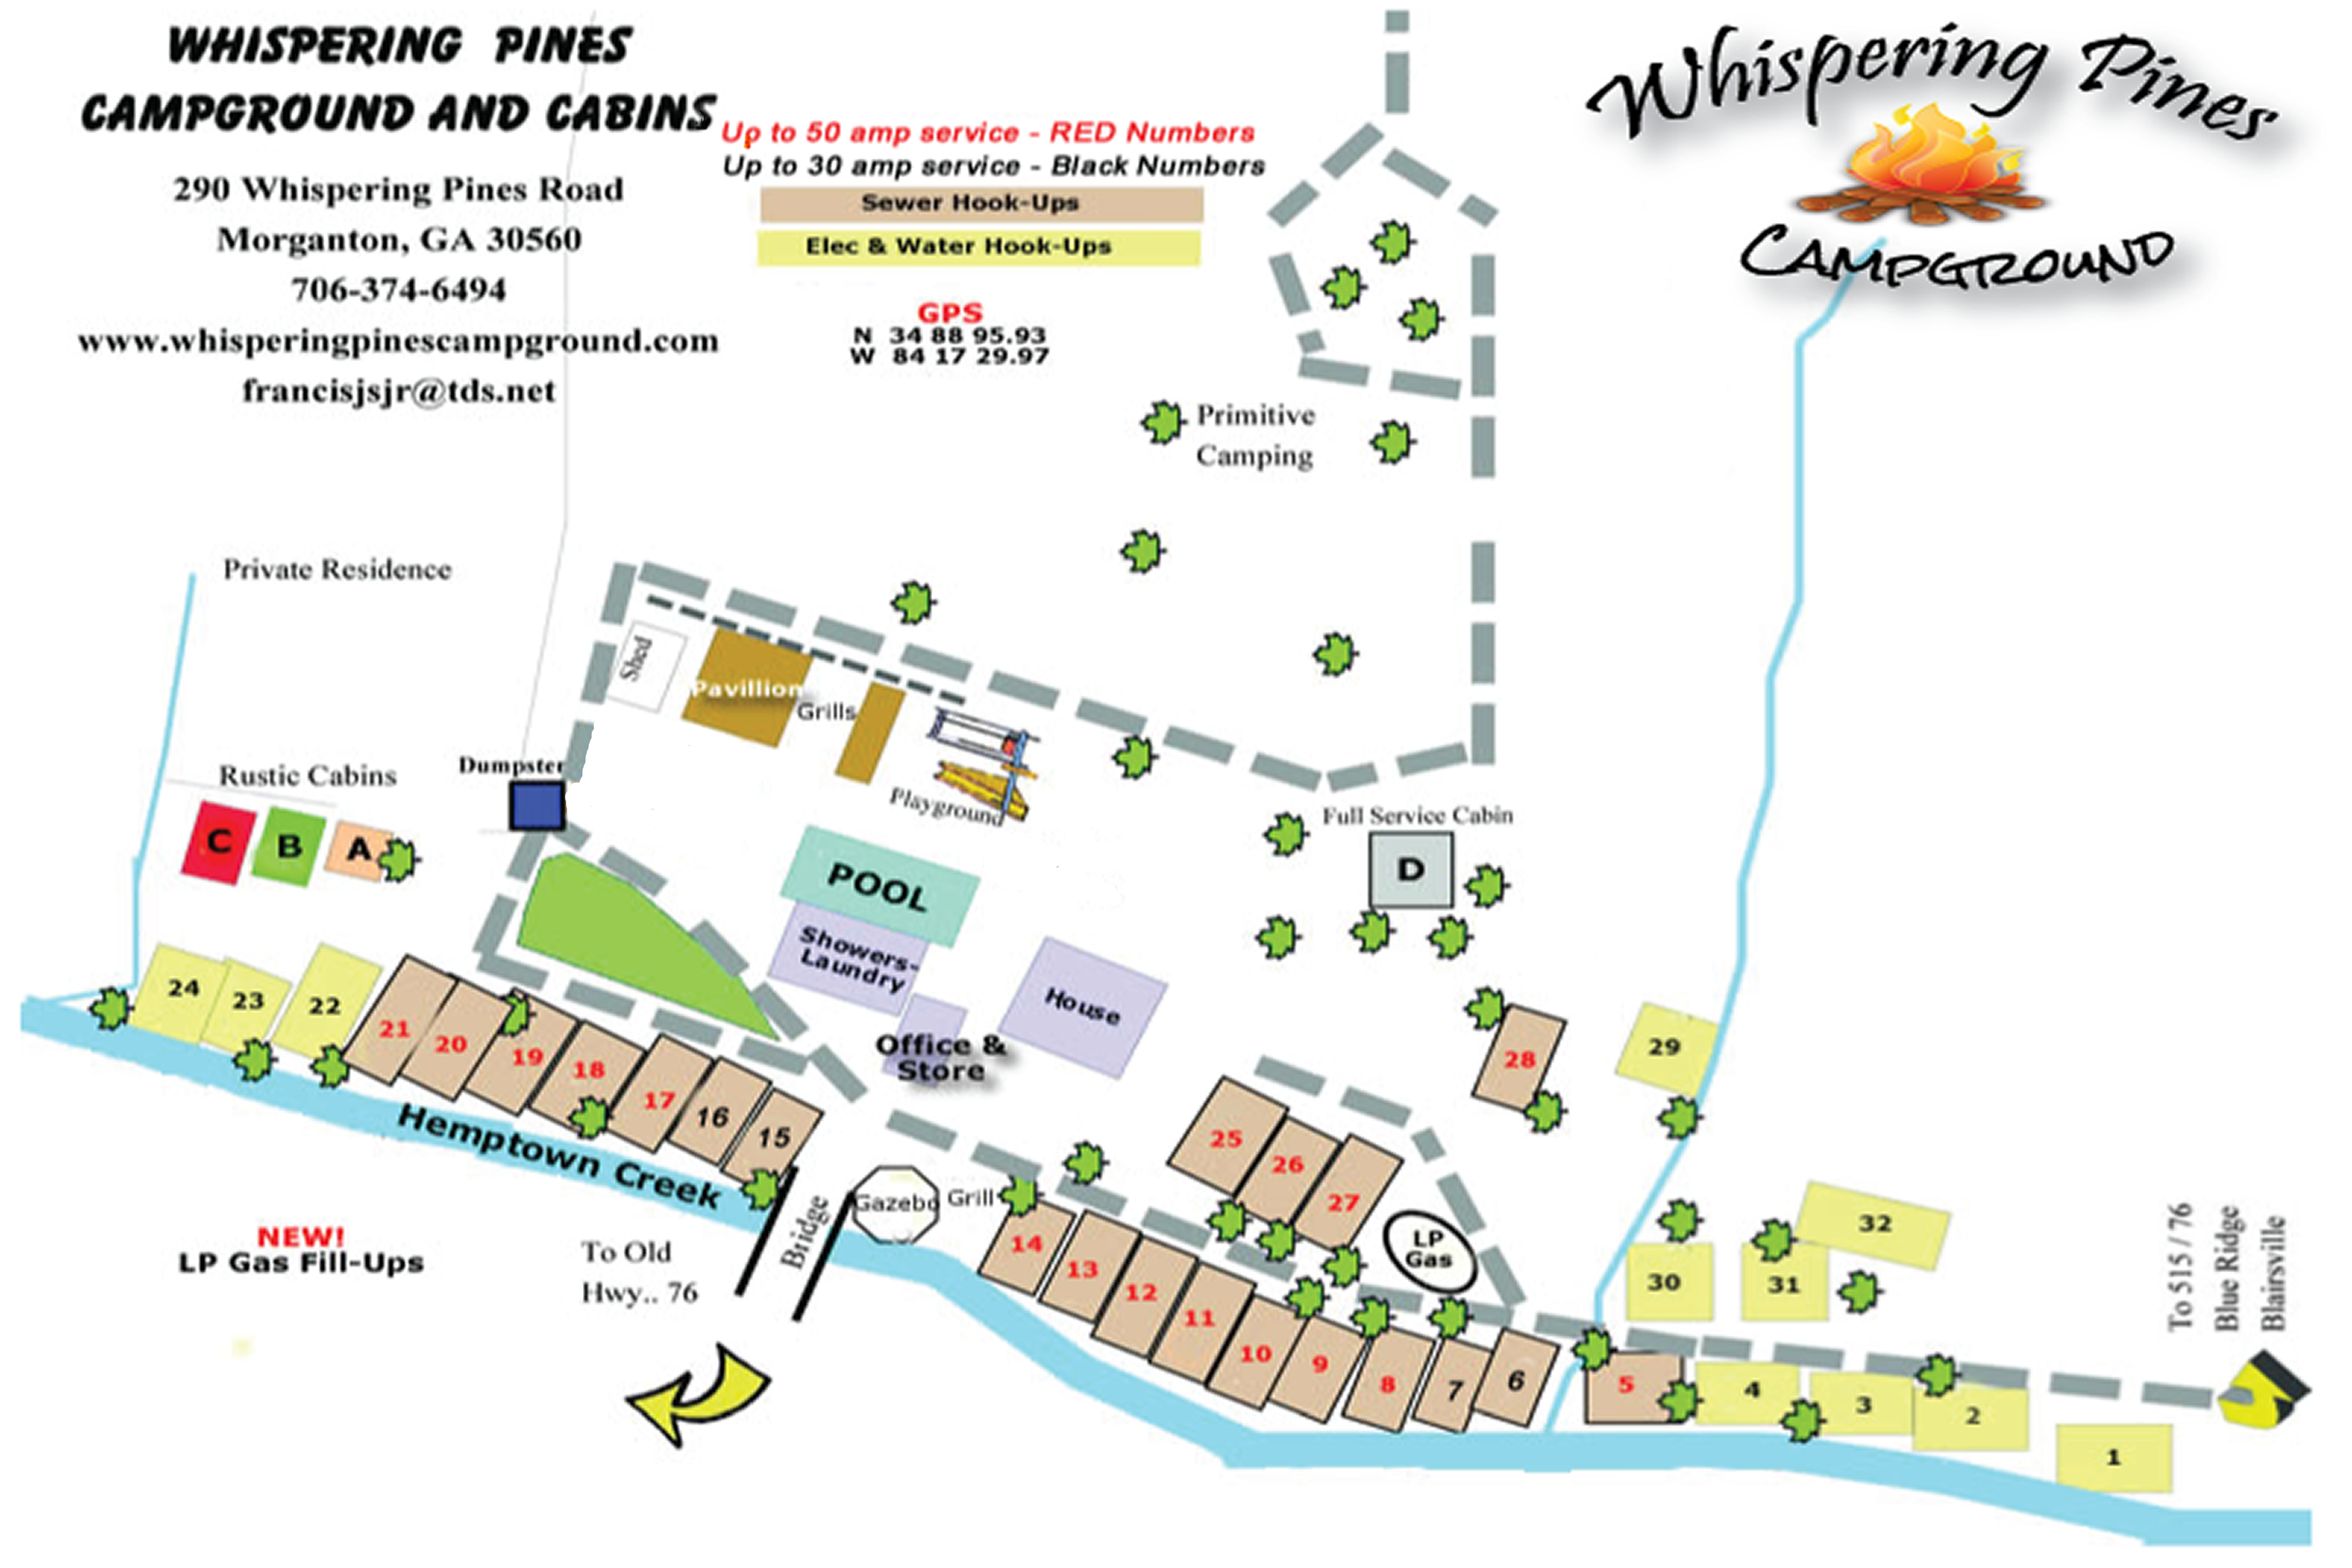 North Georgia Camping - Whispering Pines Campground - Site Map on